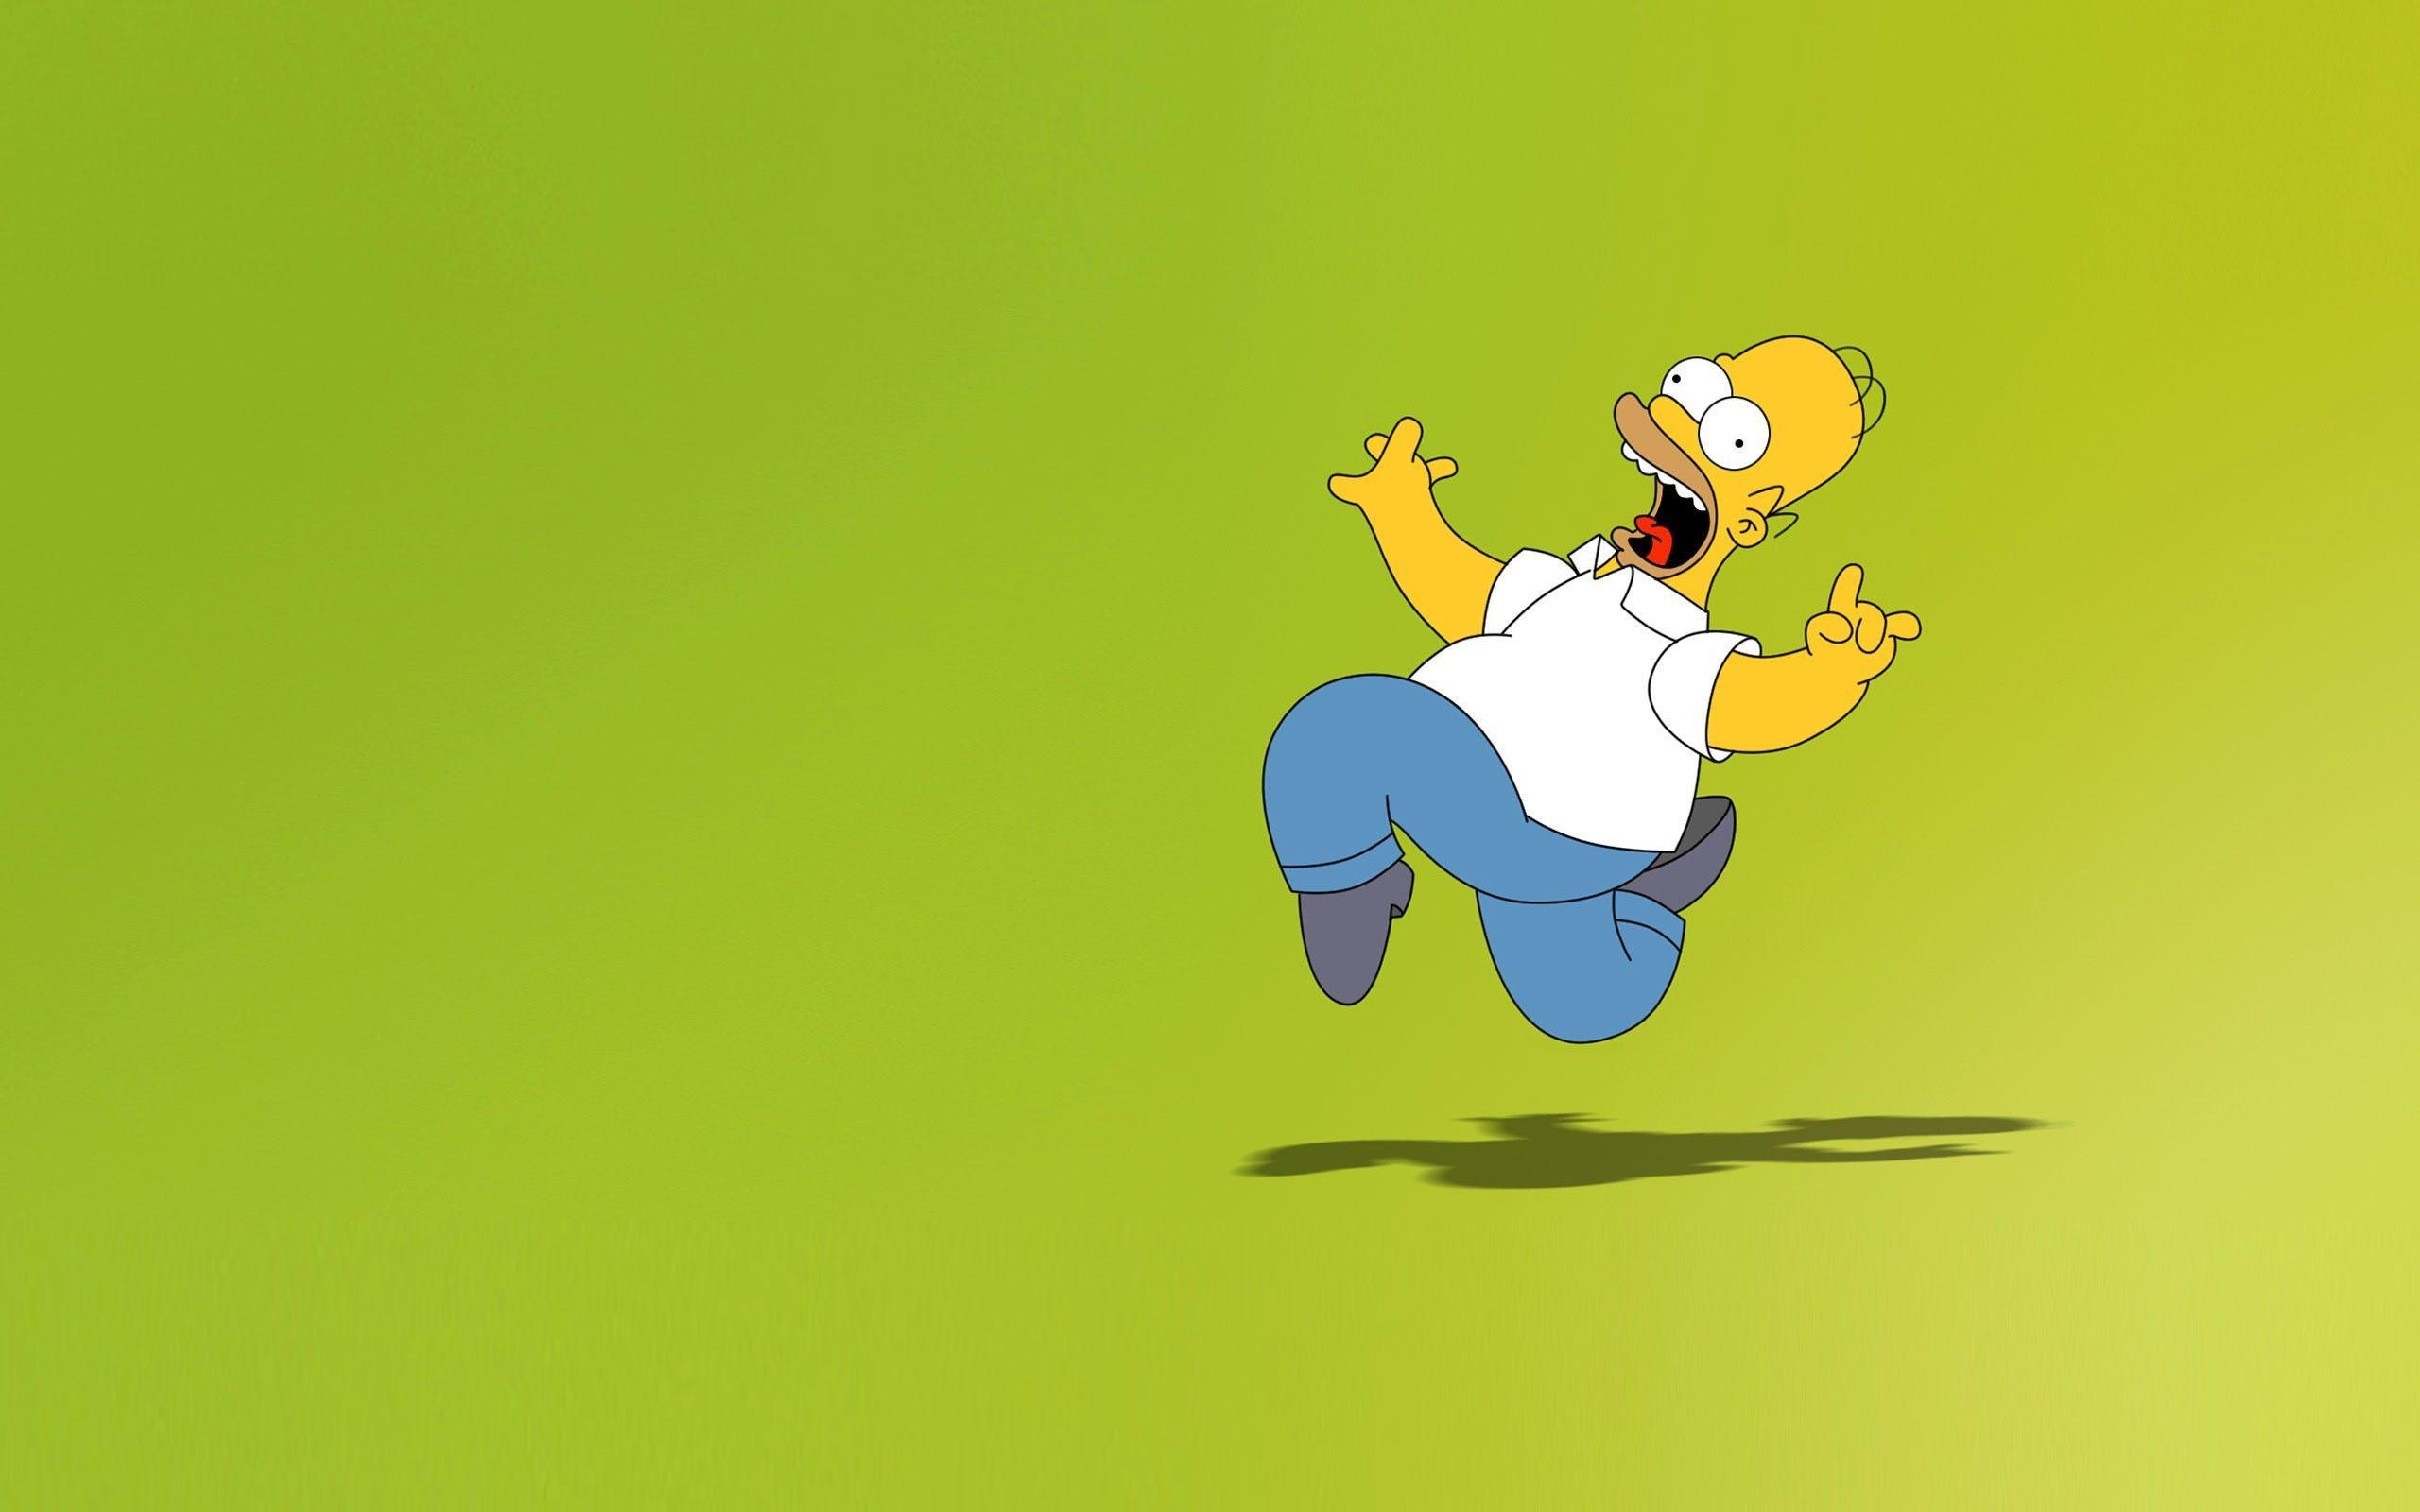 1280x720 homer simpson desktop - photo #18